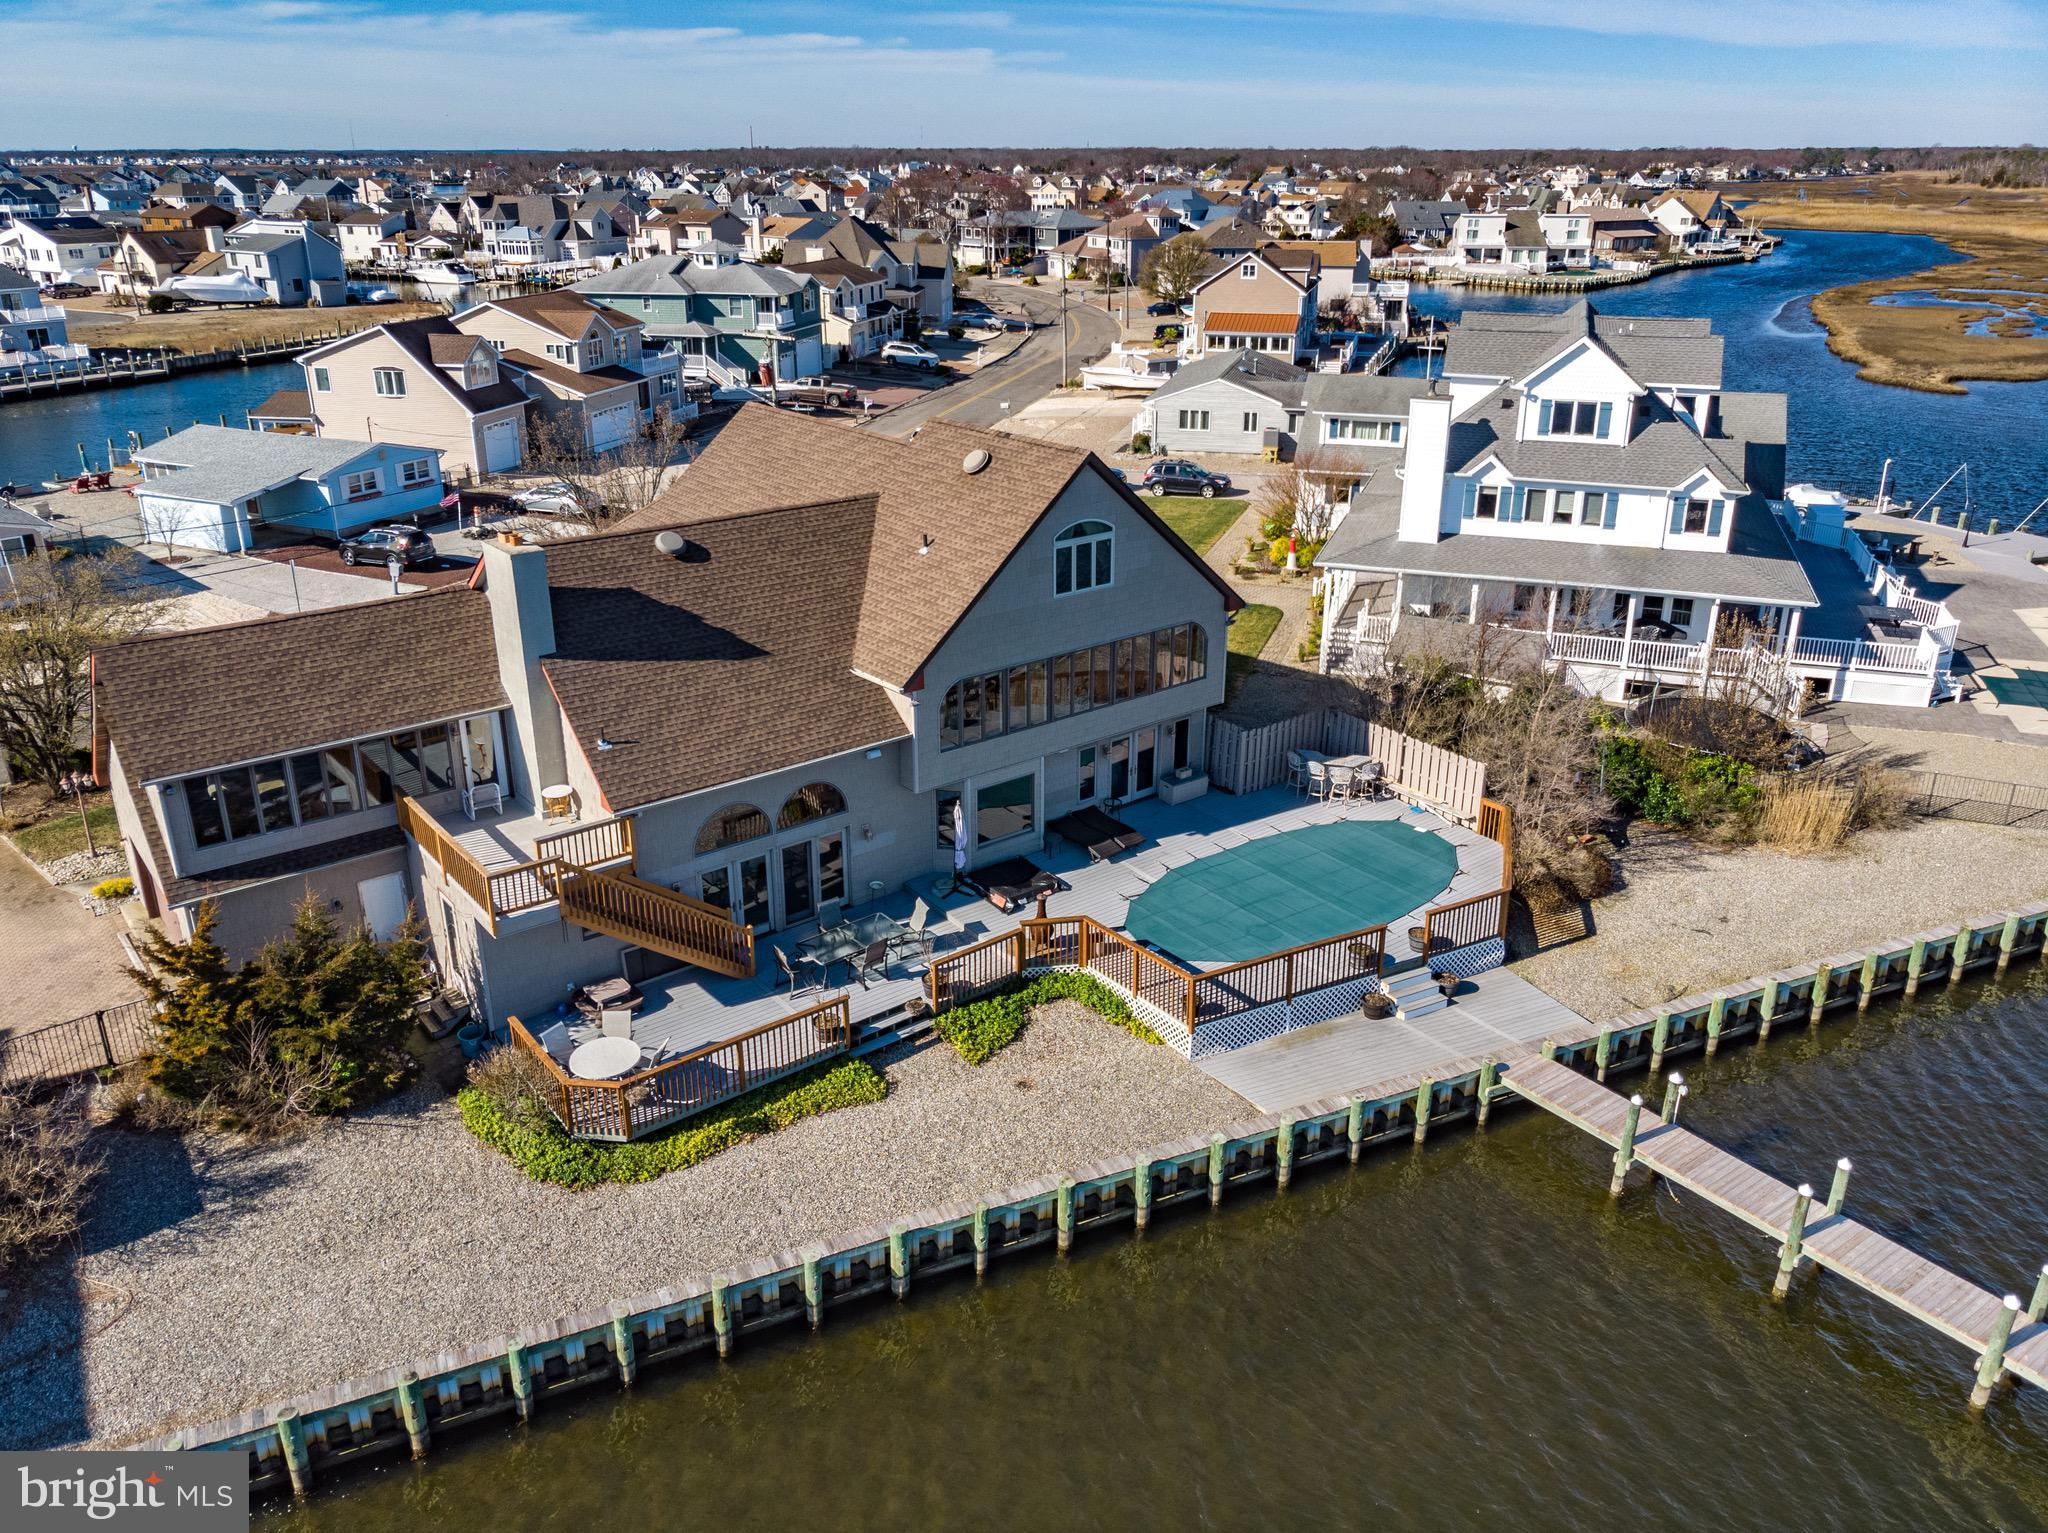 1235 CAPSTAN DRIVE, FORKED RIVER, NJ 08731